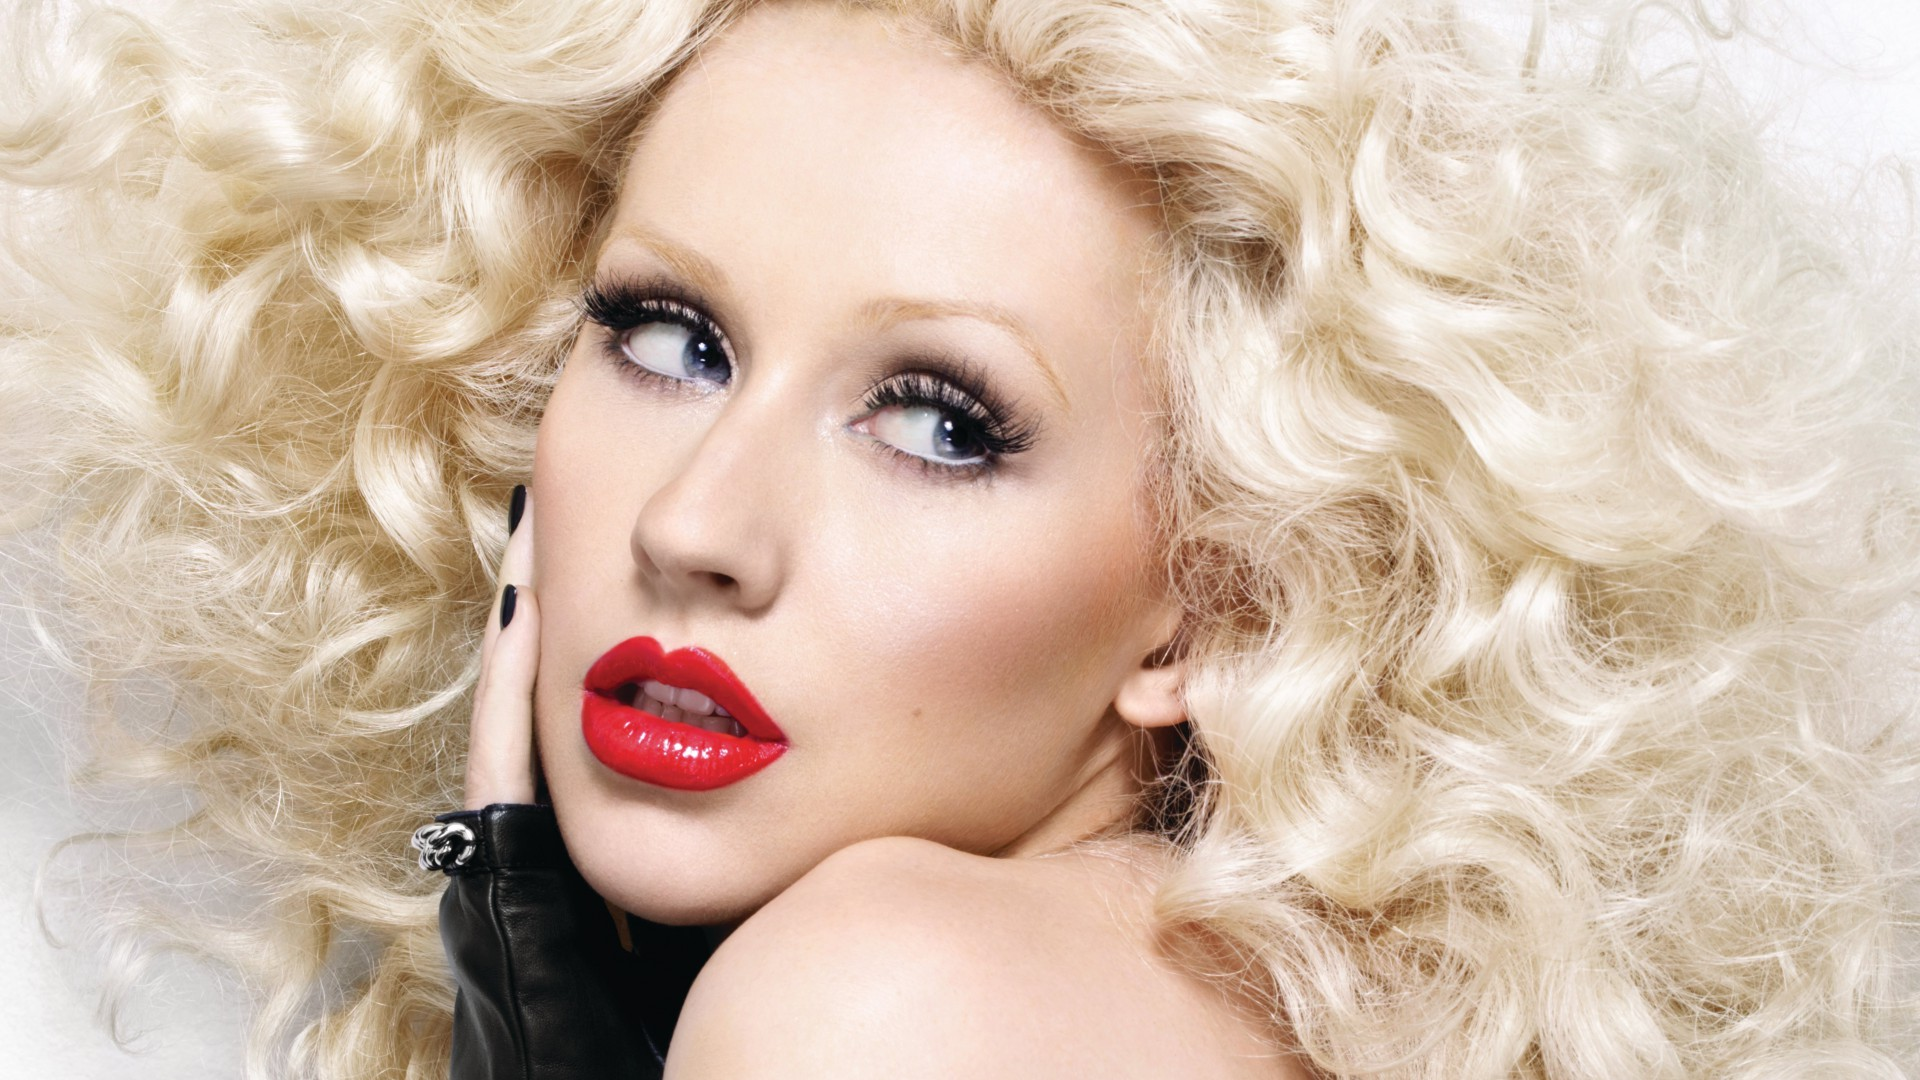 Christina Aguilera, Most Popular Celebs in 2015, singer, actress, red lips, blonde (horizontal)